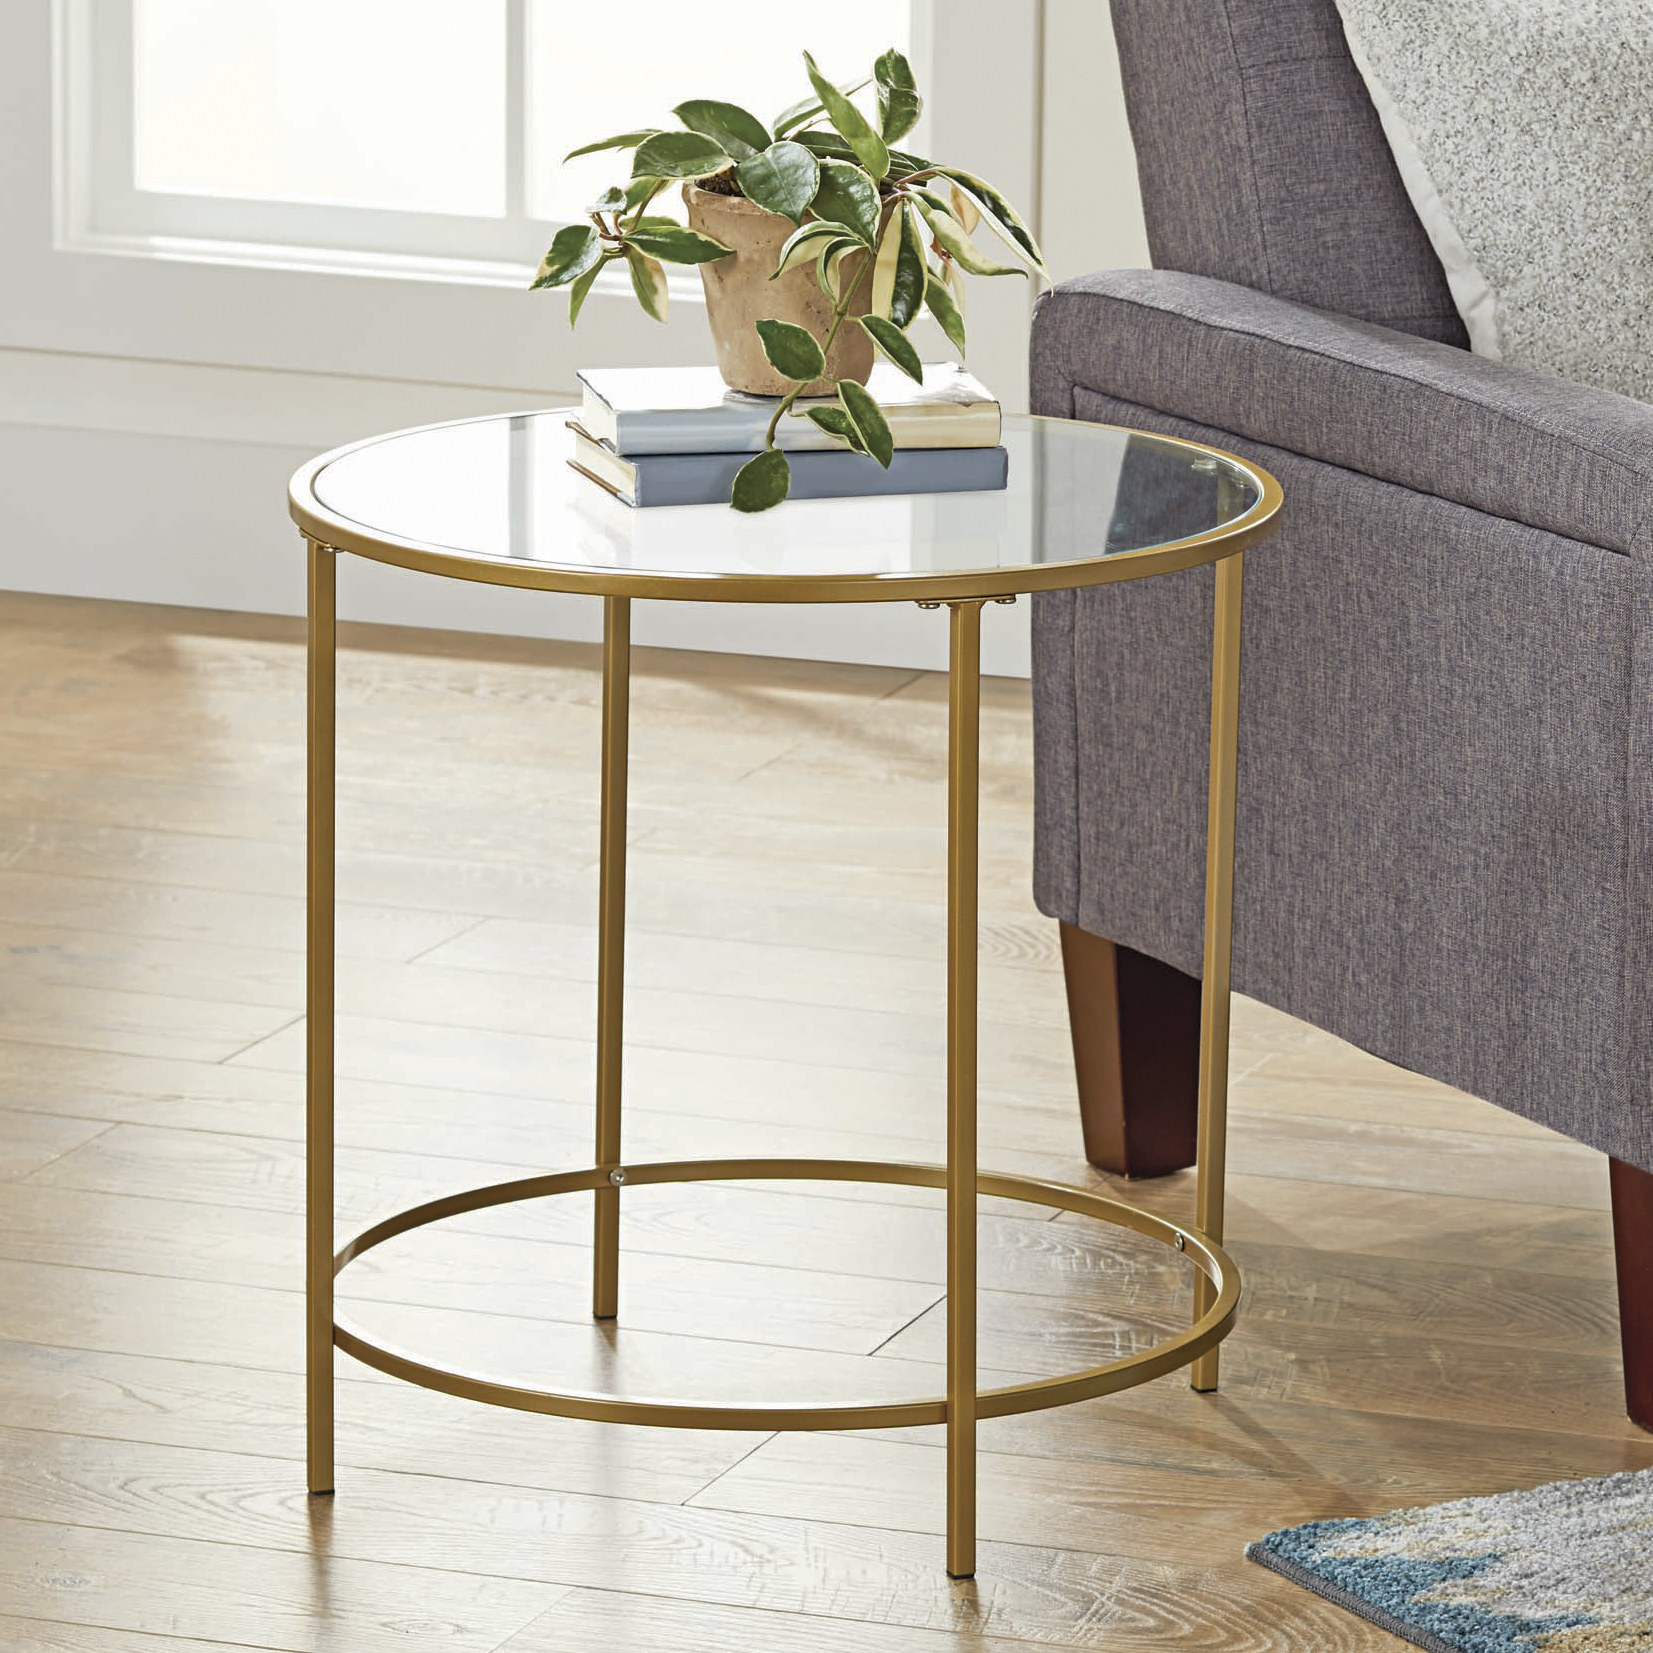 The gold side table